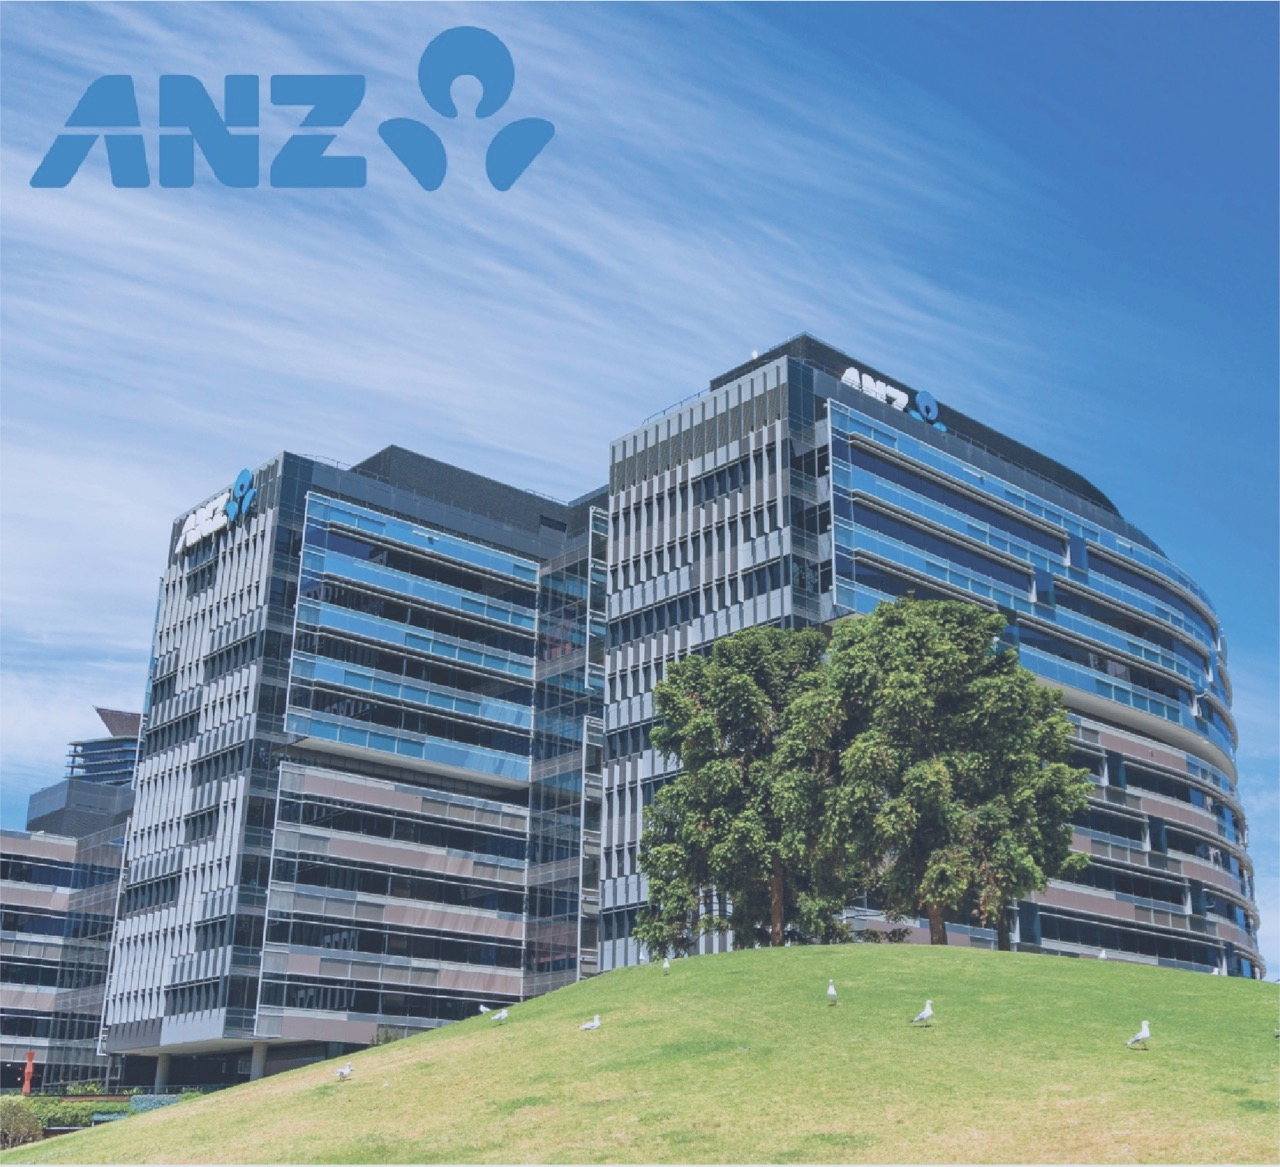 ANZ and Gresham form strategic partnership to deliver innovative solutions for corporate and institutional customers